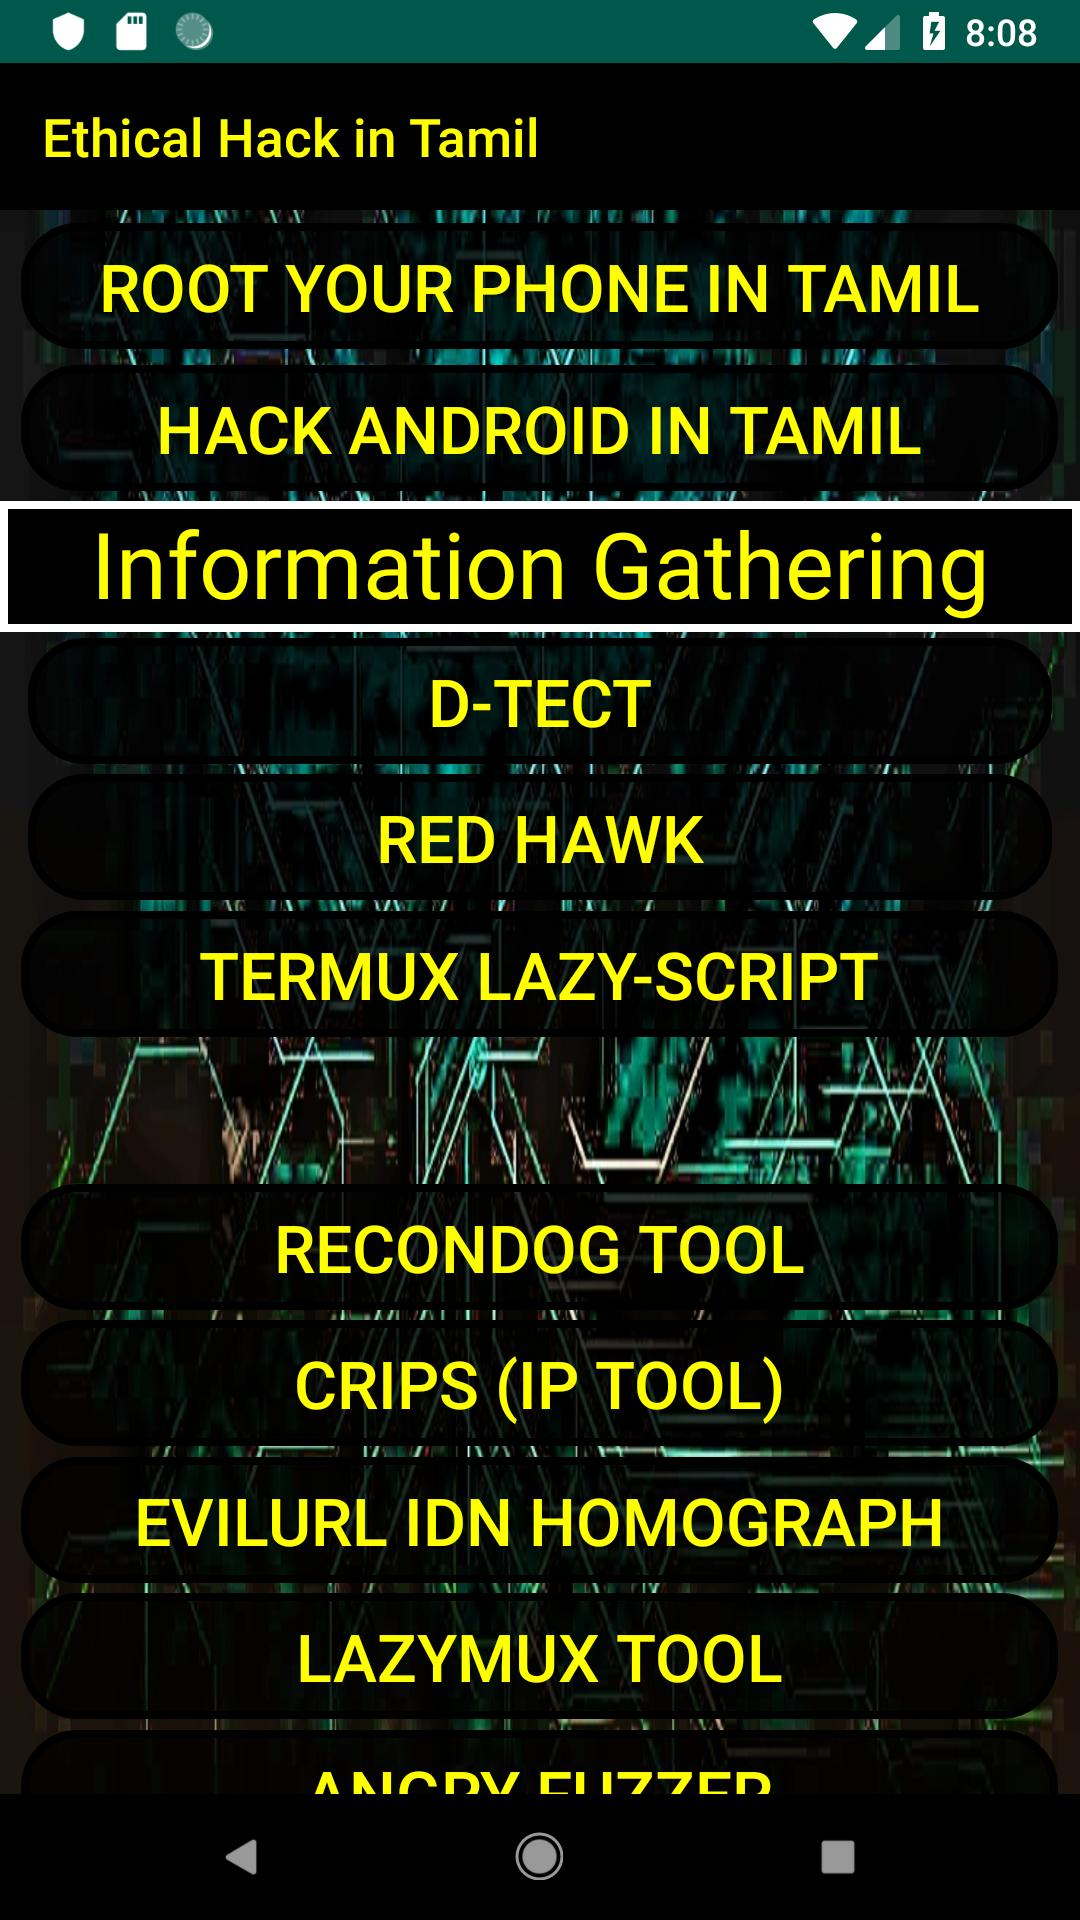 Ethical hacking termux in tamil (தமிழ்) for Android